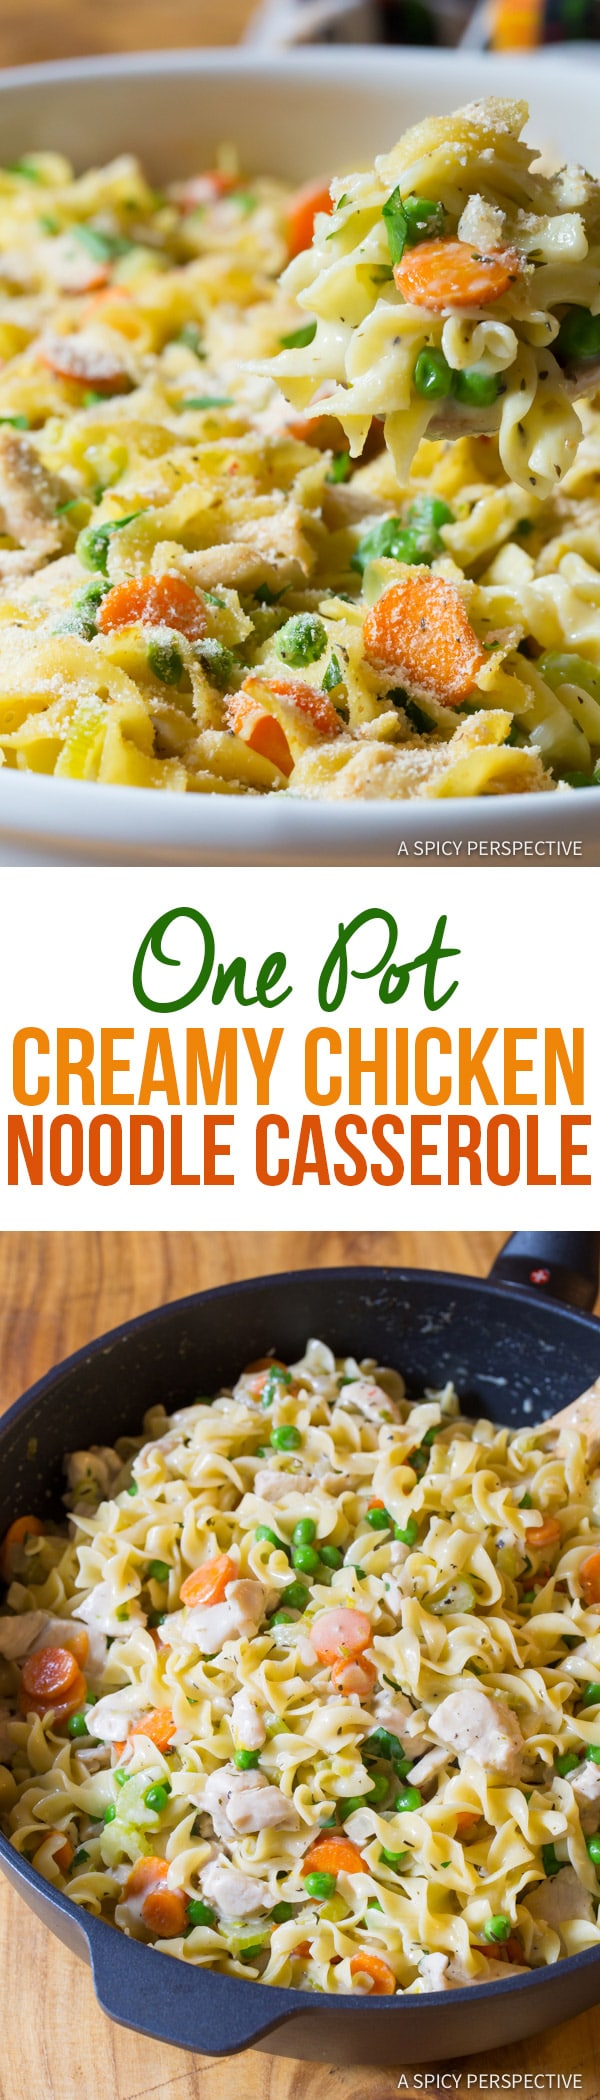 Creamy One-Pot Chicken Noodle Casserole | ASpicyPerspective.com